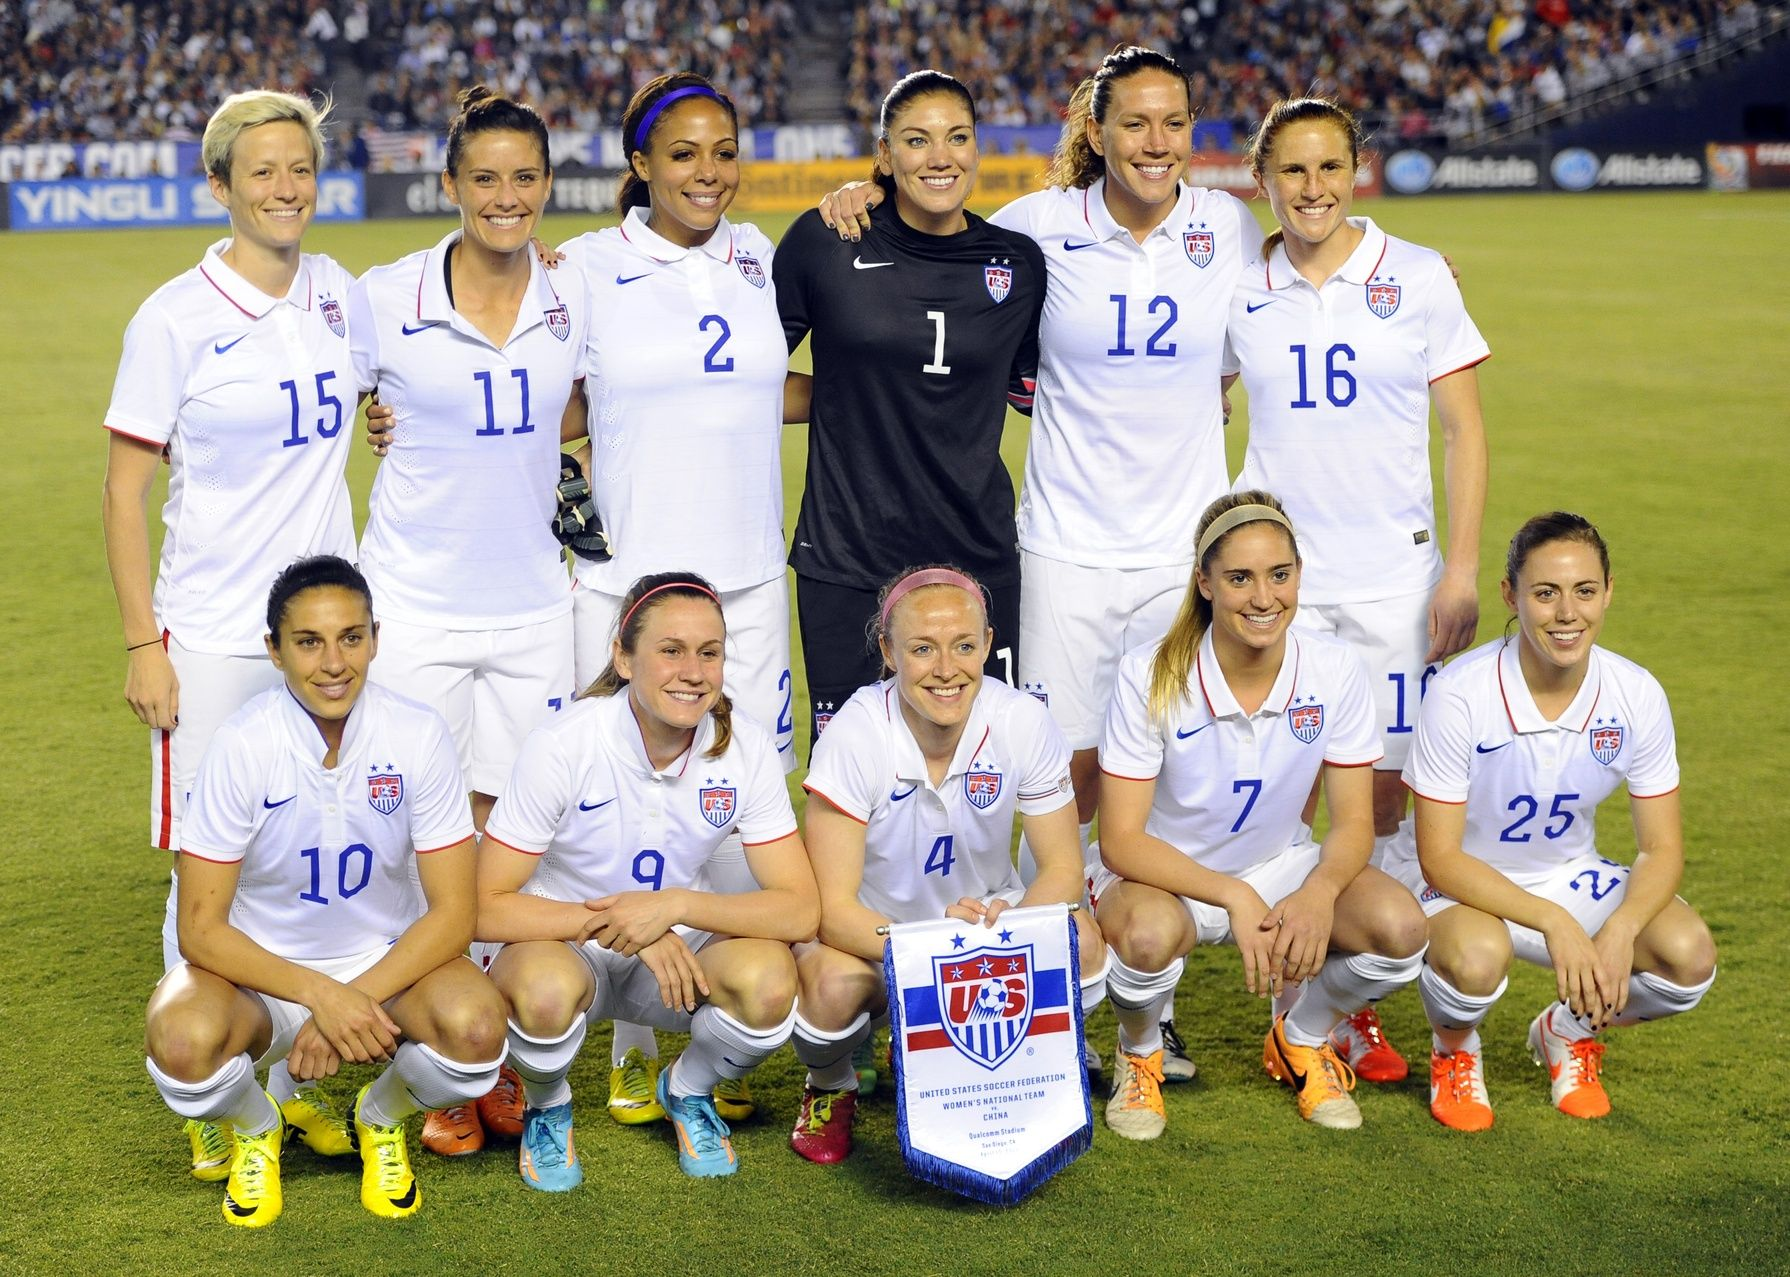 women's national soccer team - 1024×731